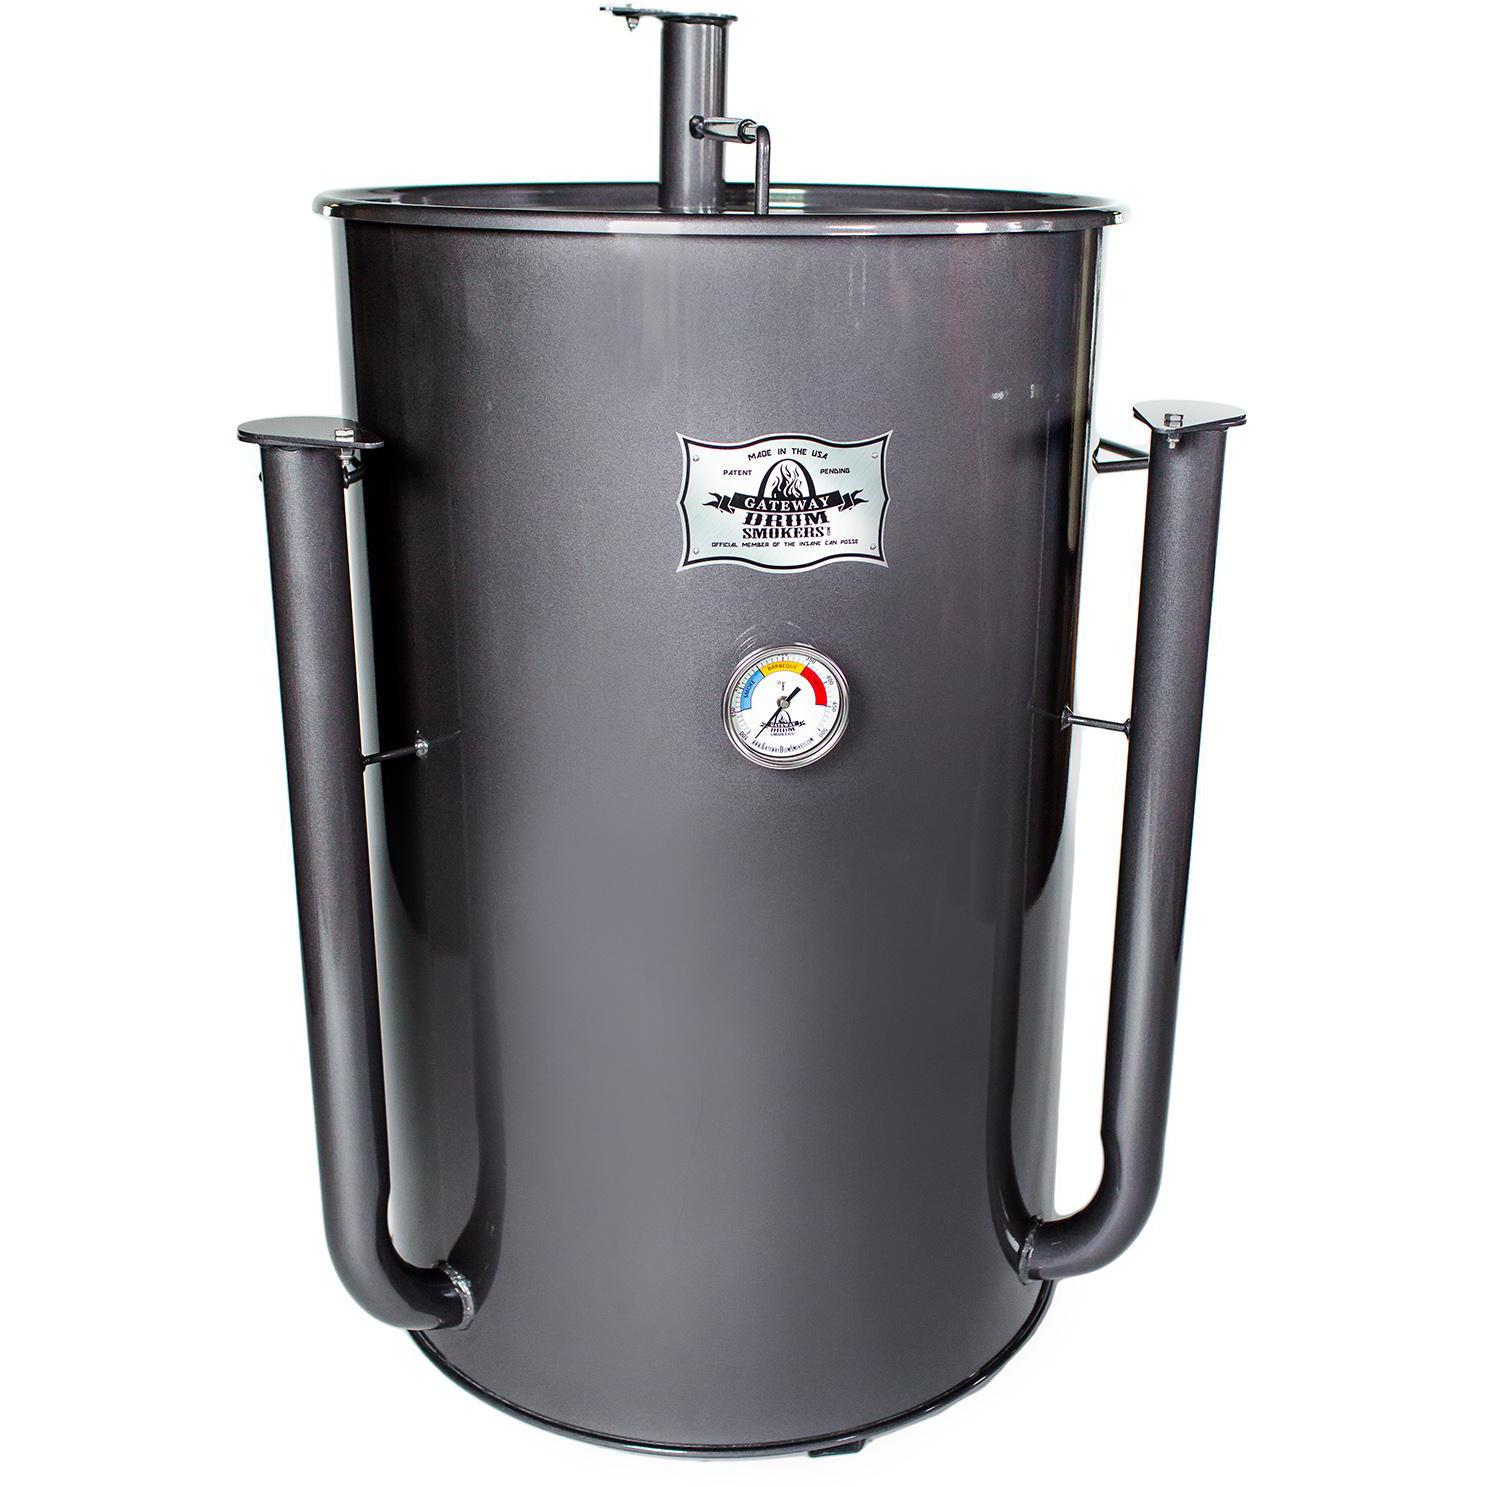 Gateway Drum Smokers 55 Gallon Charcoal BBQ Smoker - Charcoal - 55122